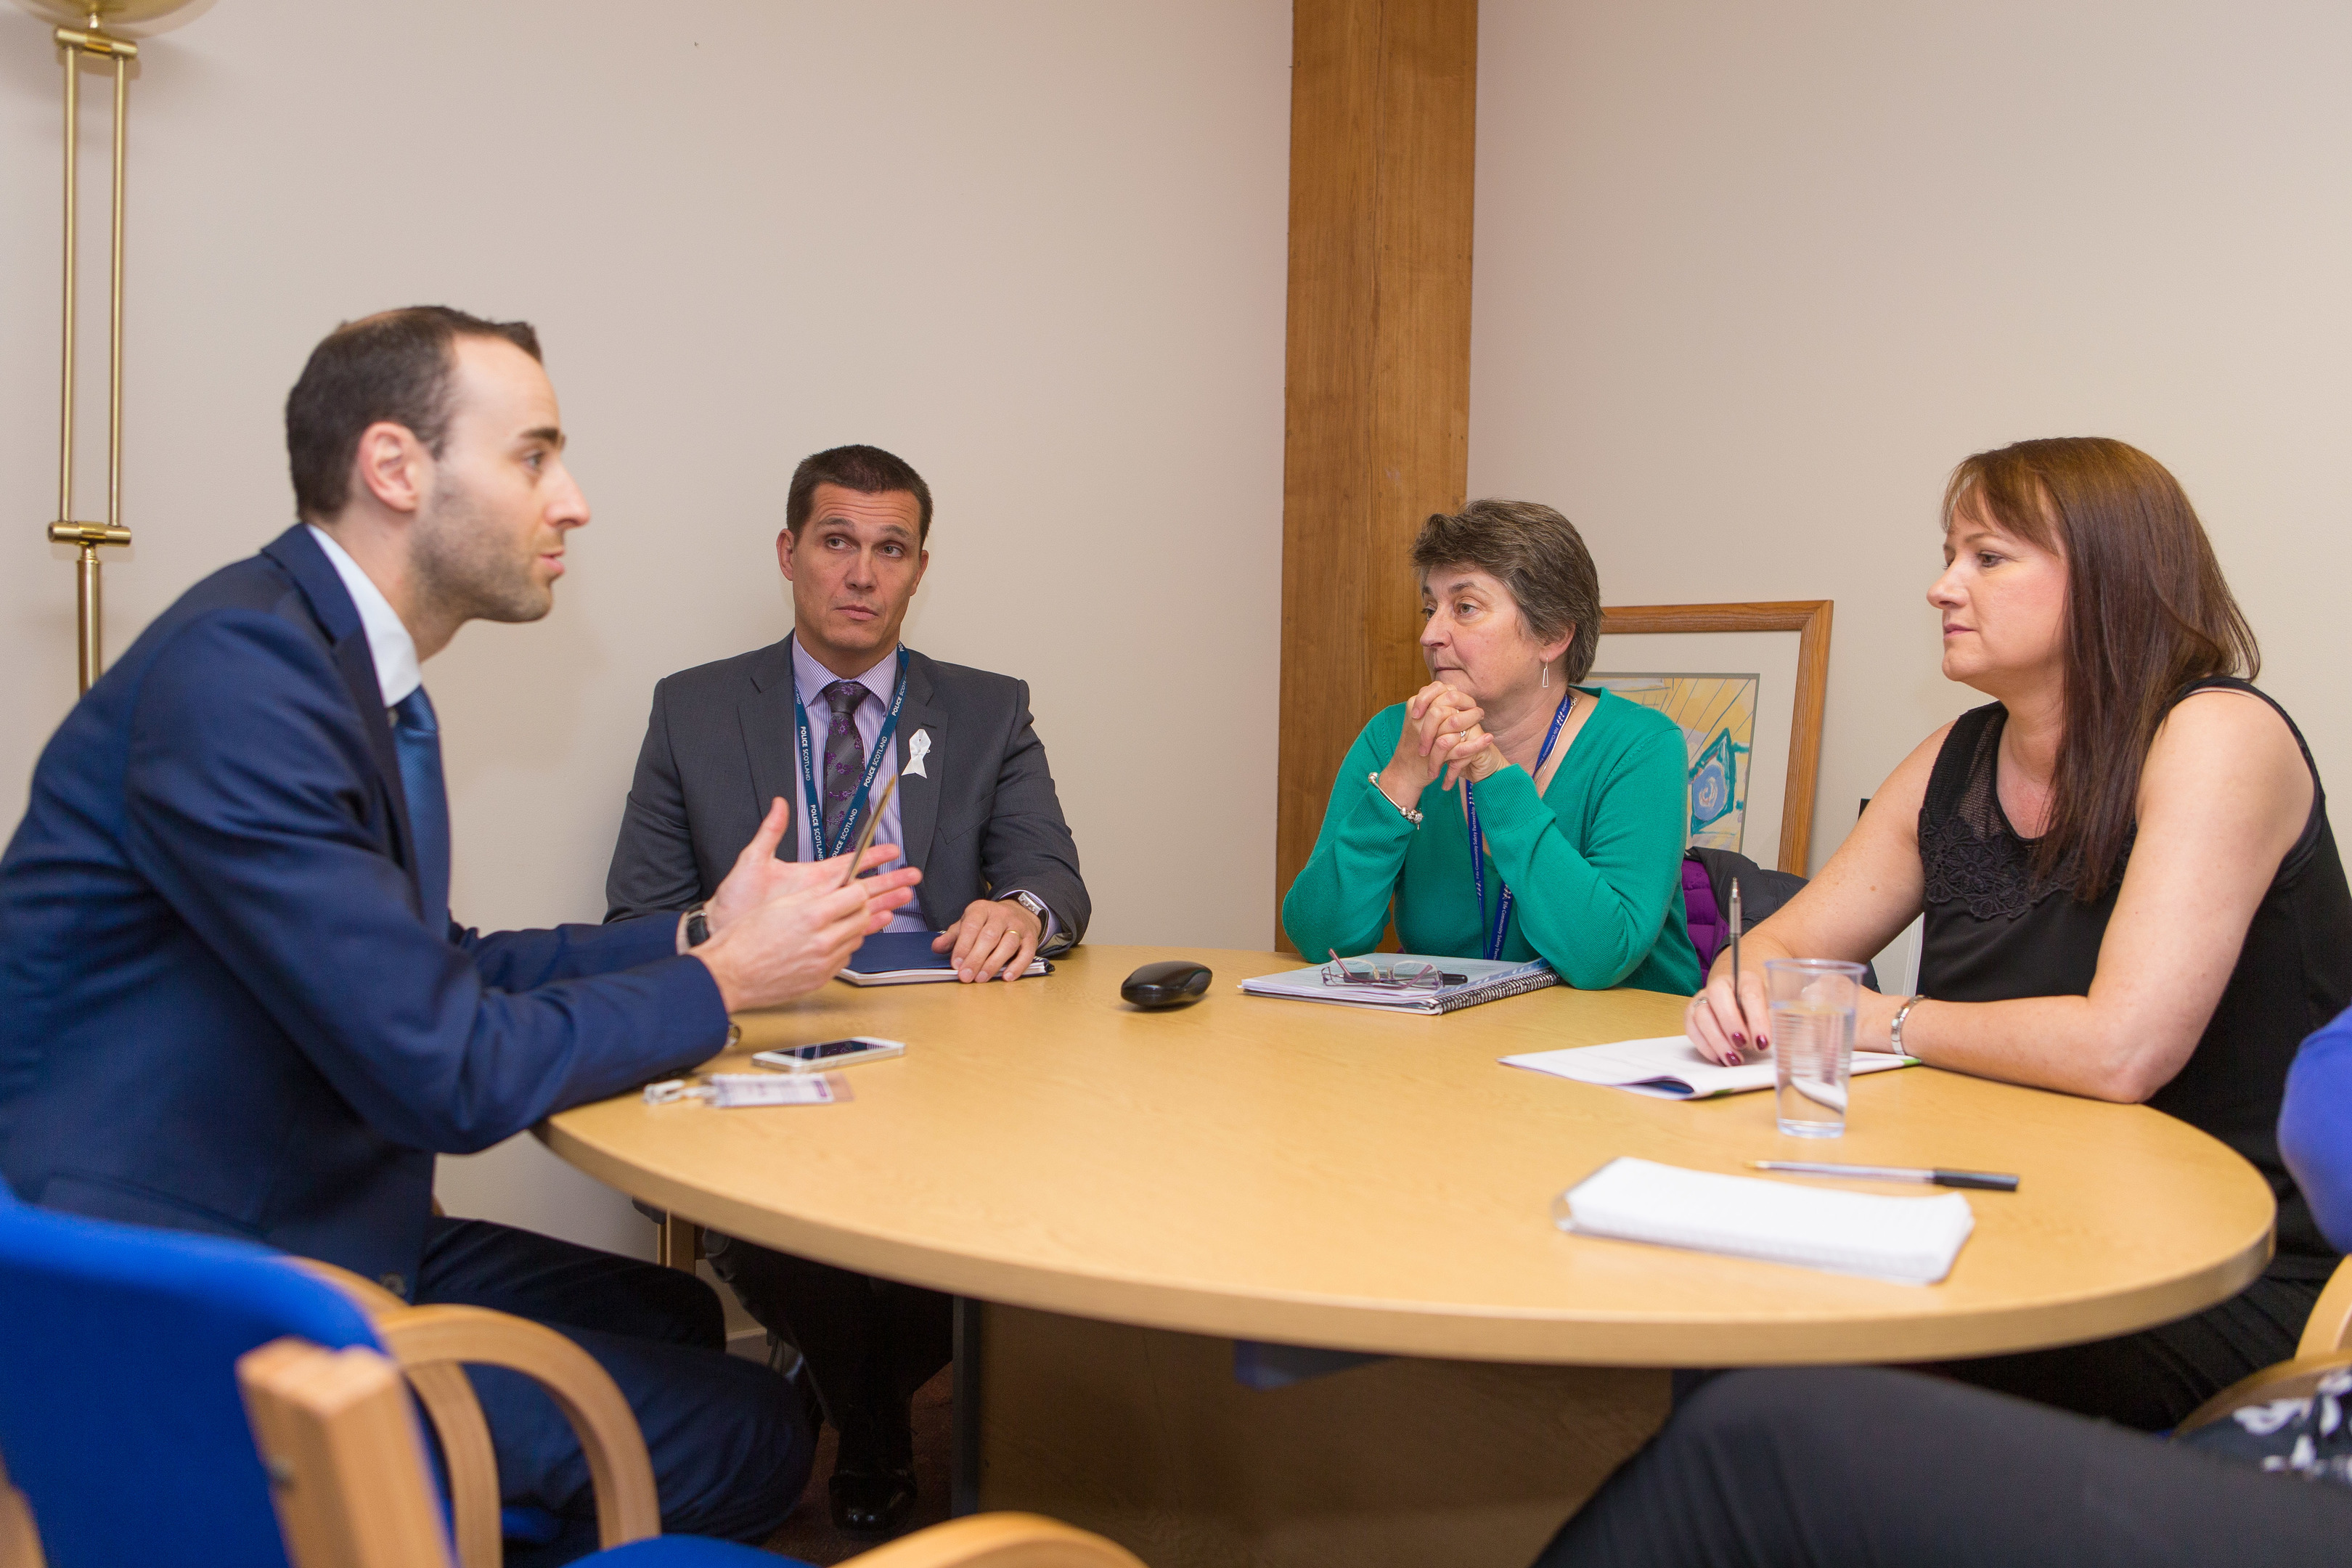 Reporter Jonathan Watson discusses domestic abuse handing in Fife with (from left) DI Jim Leeson, Sheila Noble (Fife Violence Against Women Partnership) and Womans Aid representative Lynda Noble